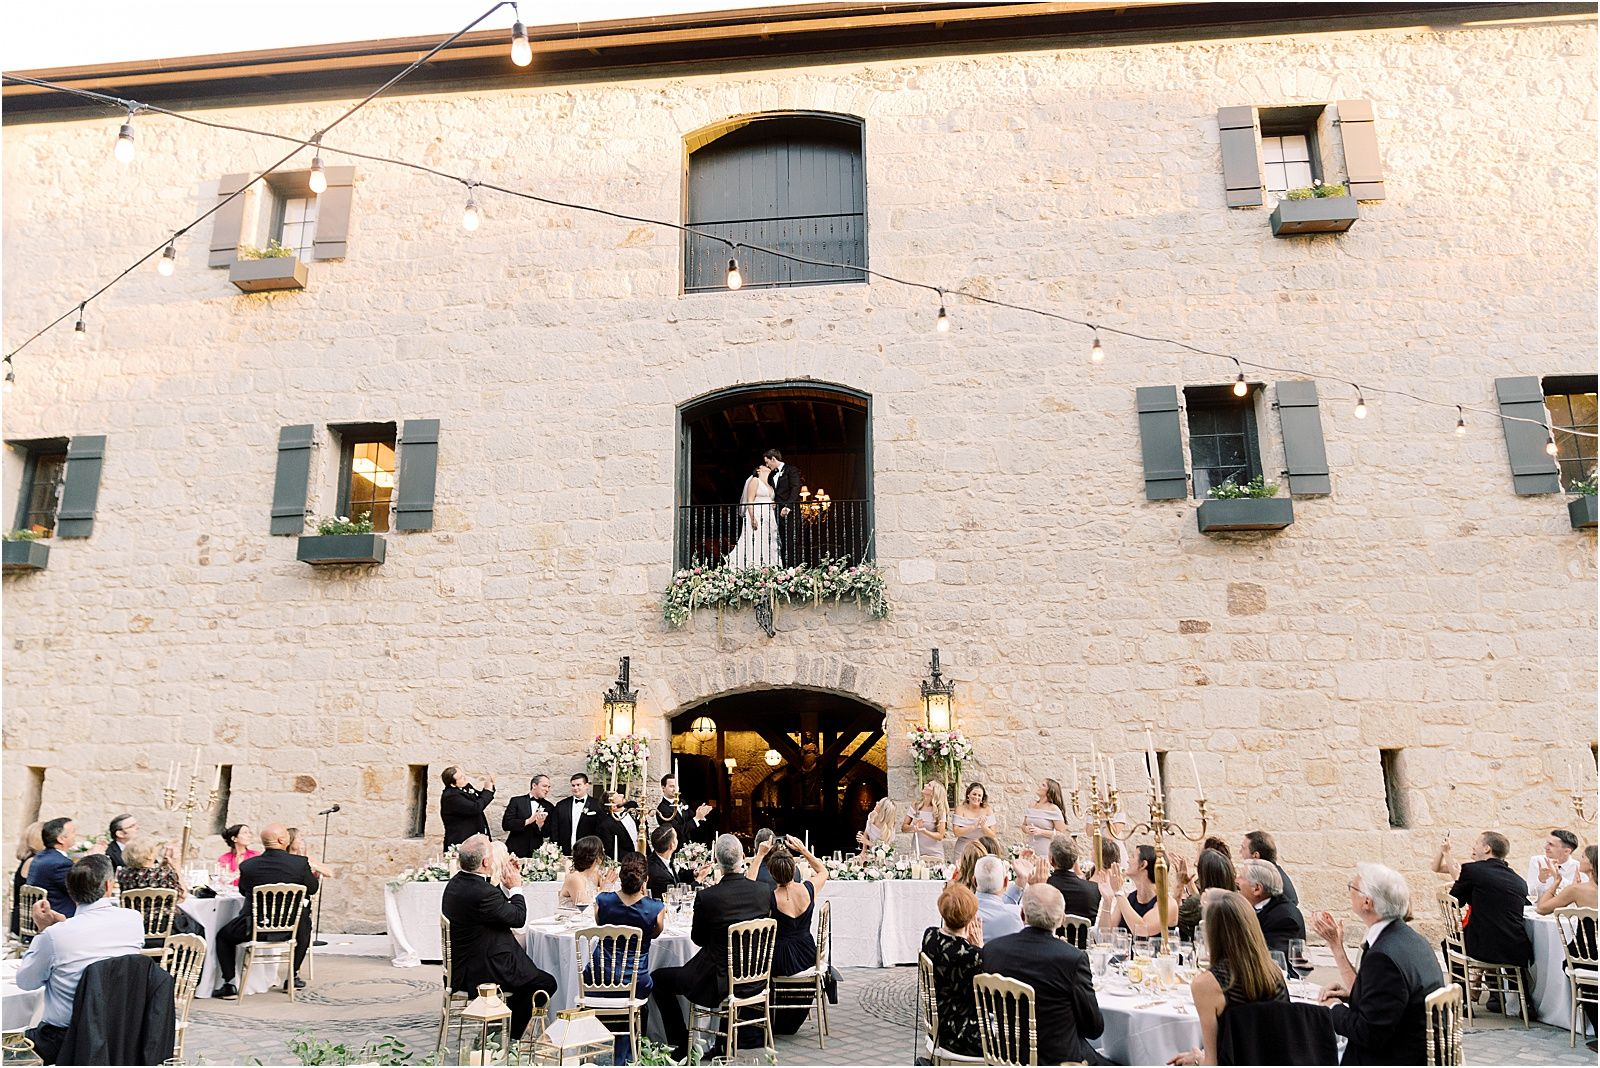 10 Best Napa Sonoma Wine Country Wedding Venues In 2020 Wine Country Wedding Sonoma Wine Country Vineyard Wedding Venues